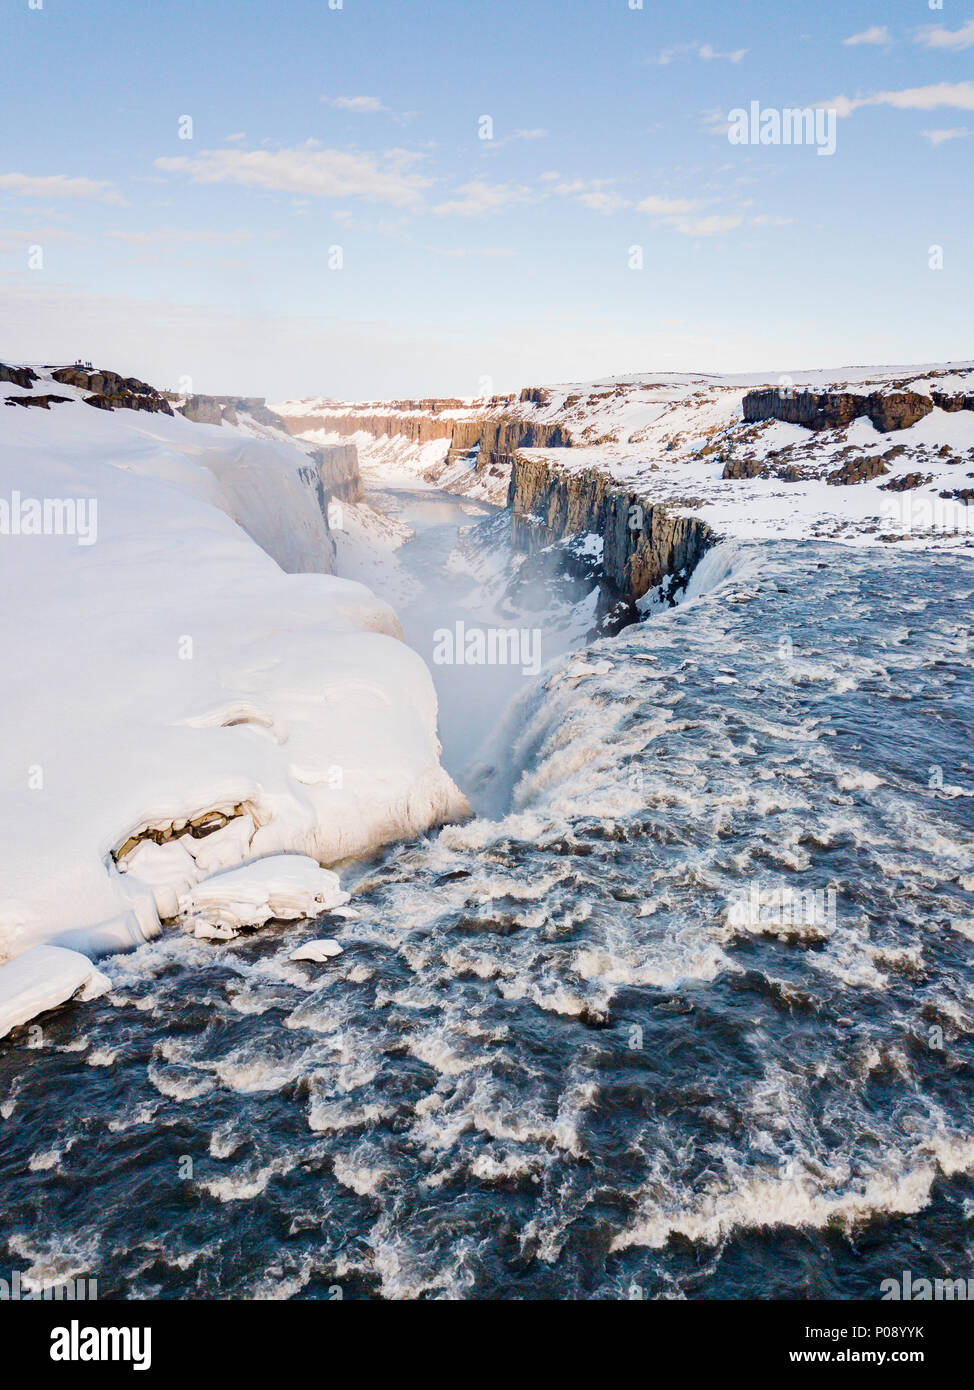 Aerial view, snowy landscape, gorge, canyon with falling water masses, Dettifoss waterfall in winter, Northern Iceland, Iceland - Stock Image